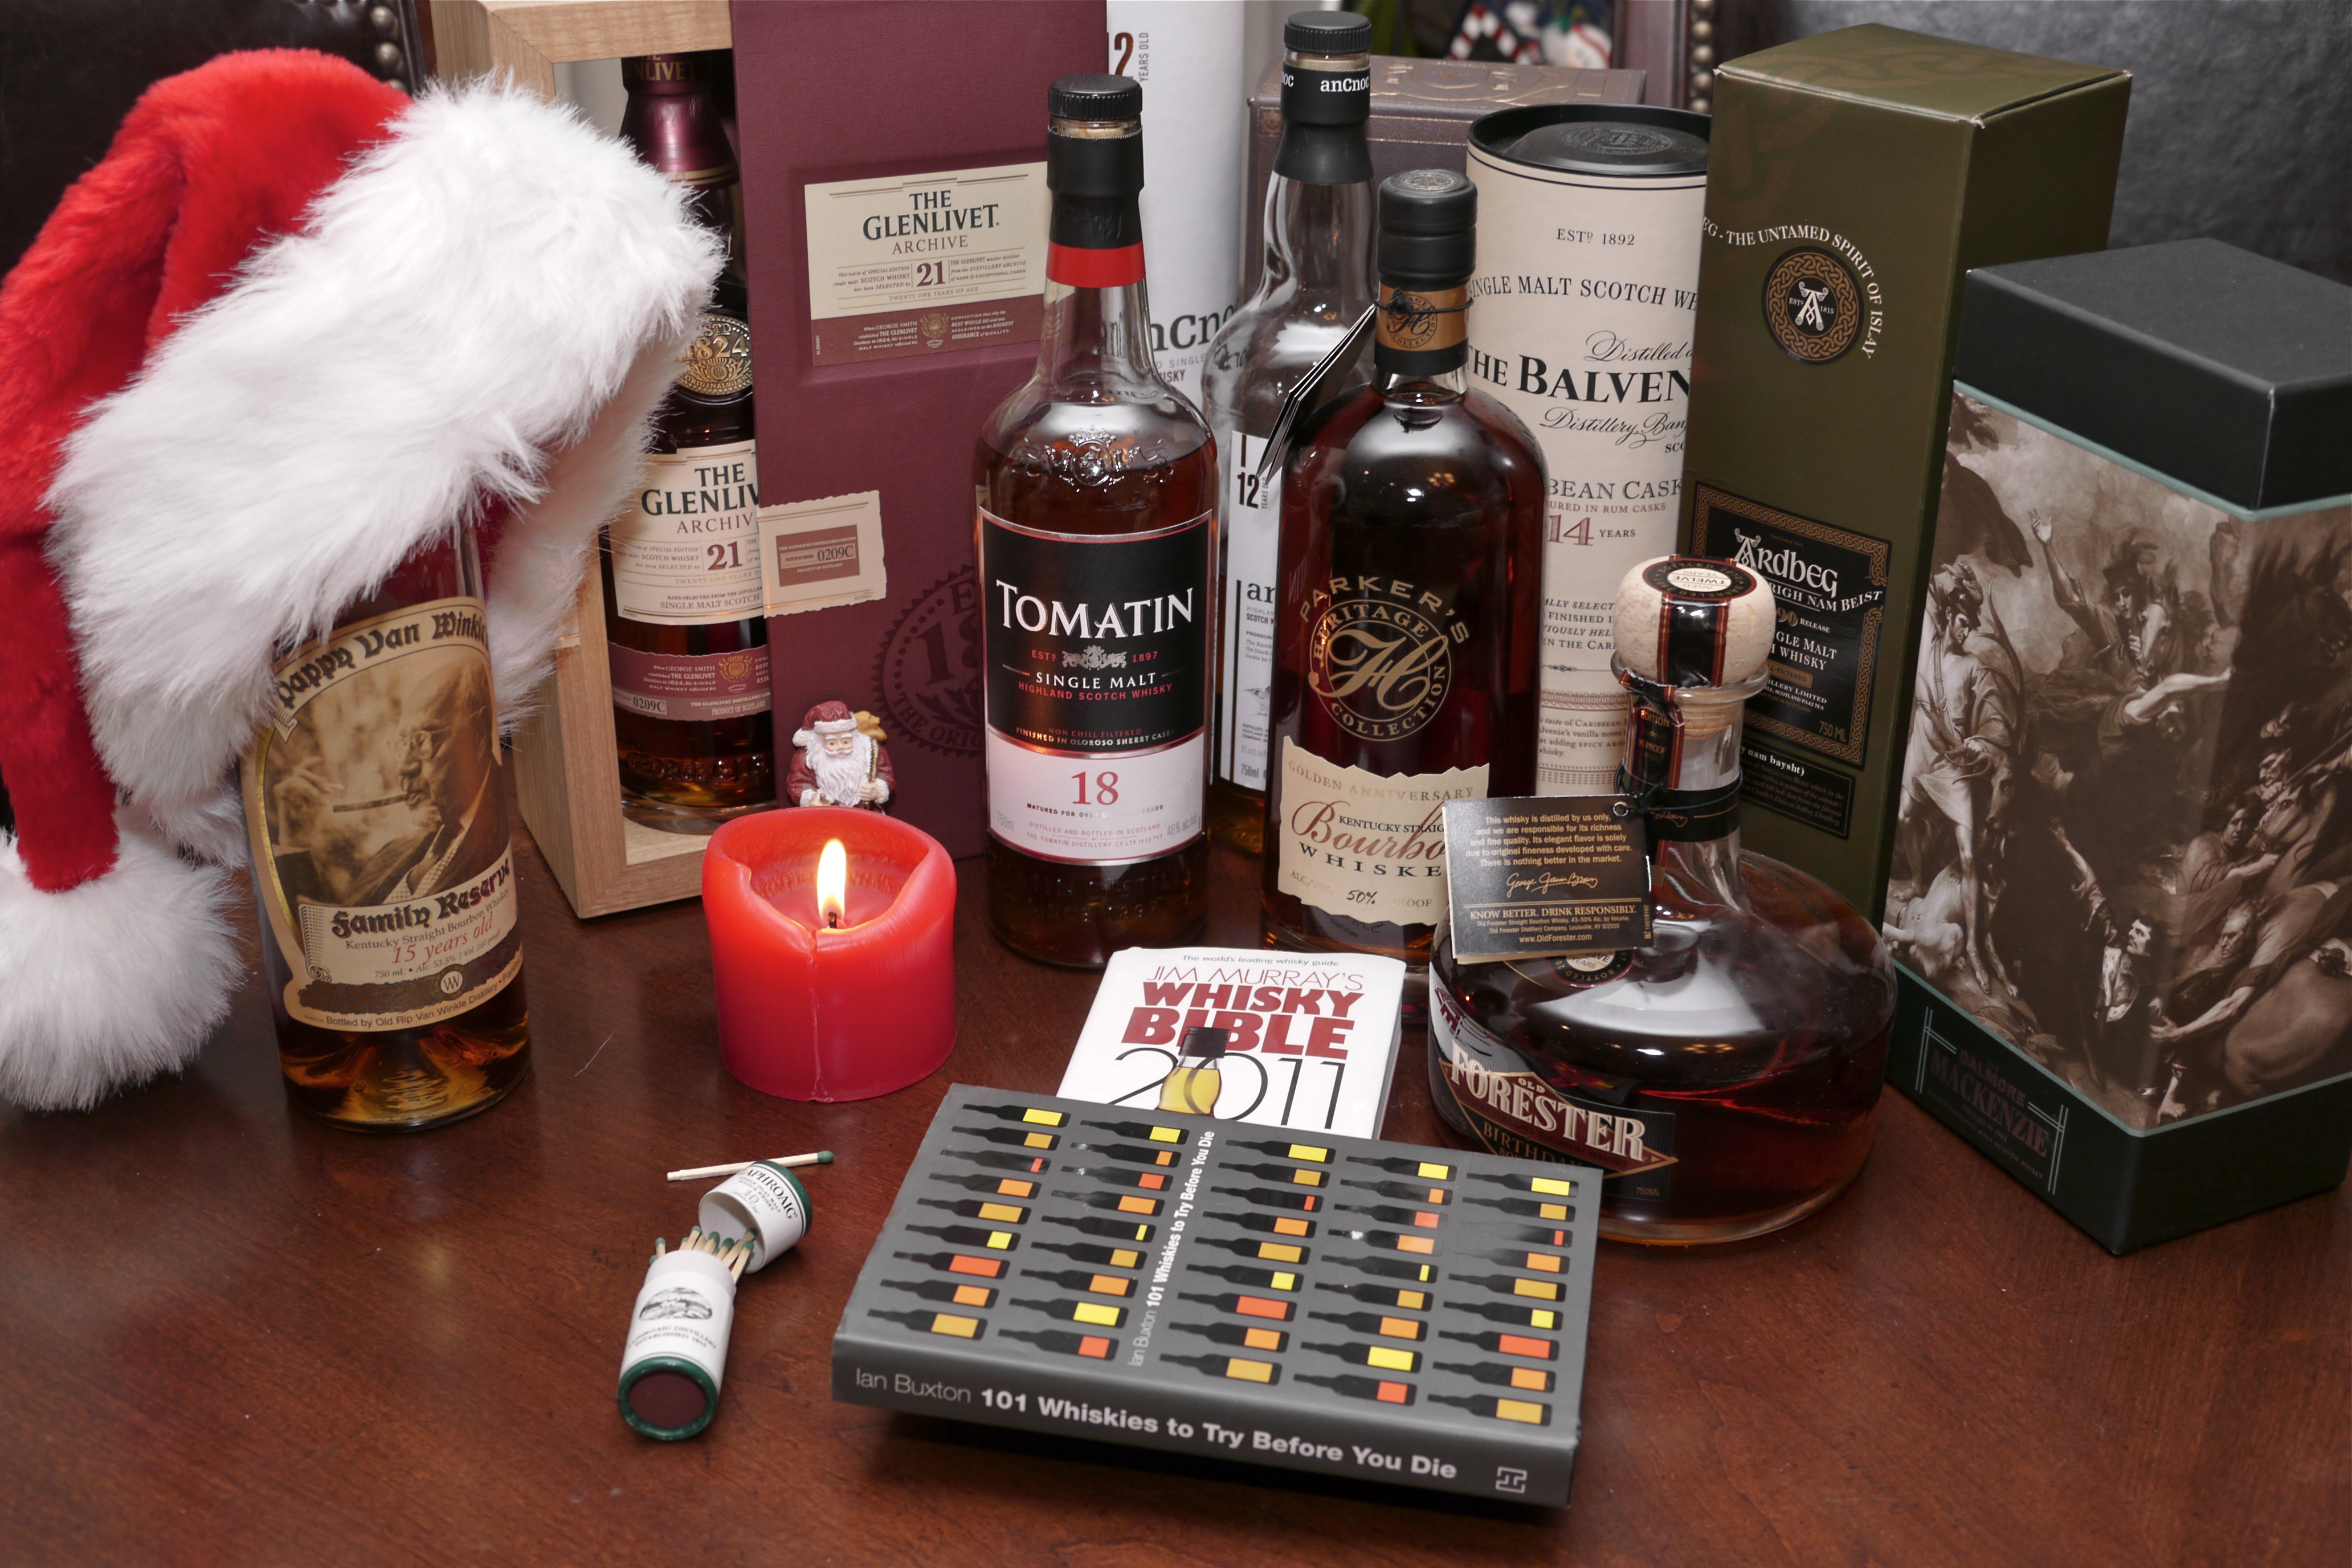 whisky gift guide scotch